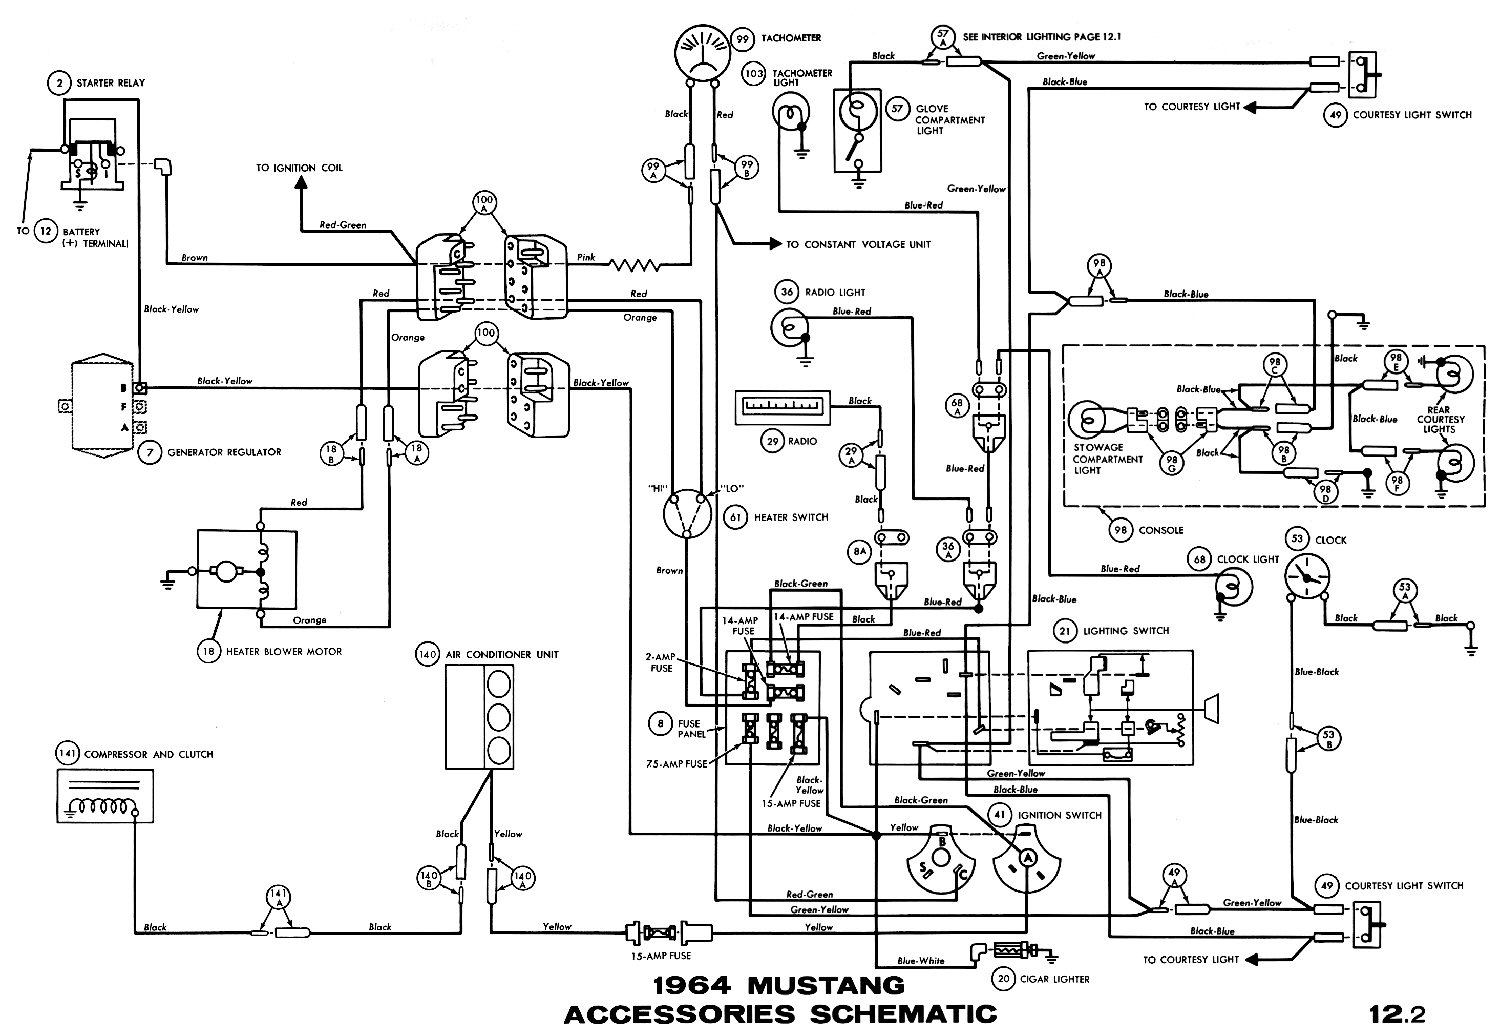 1968 Mustang Starter Relay Wiring Diagram Free For Chevy Ignition Wire 1965 Ford Source Rh 15 2 Logistra Net De